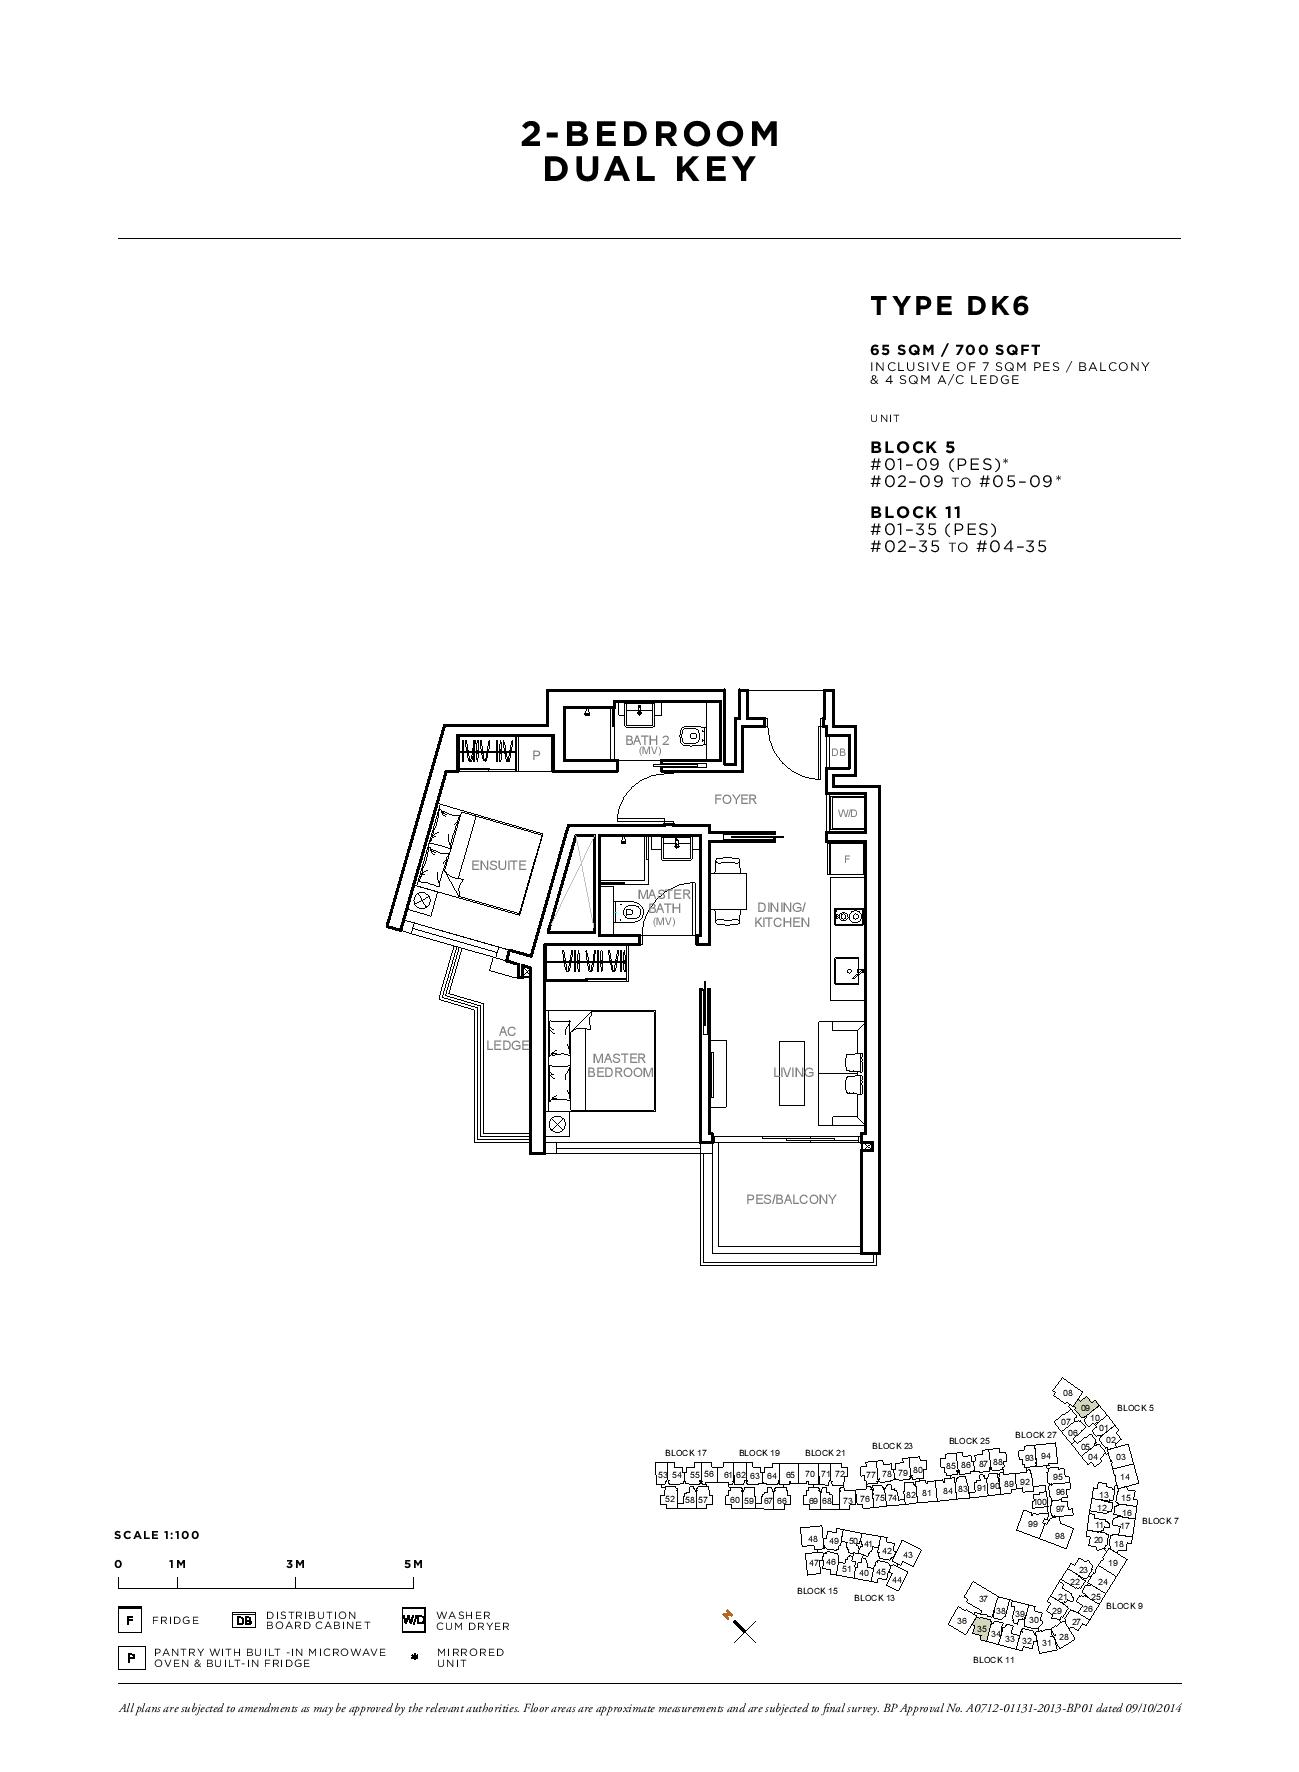 Sophia Hills 2 Bedroom Dual Key Type DK6 Floor Plans